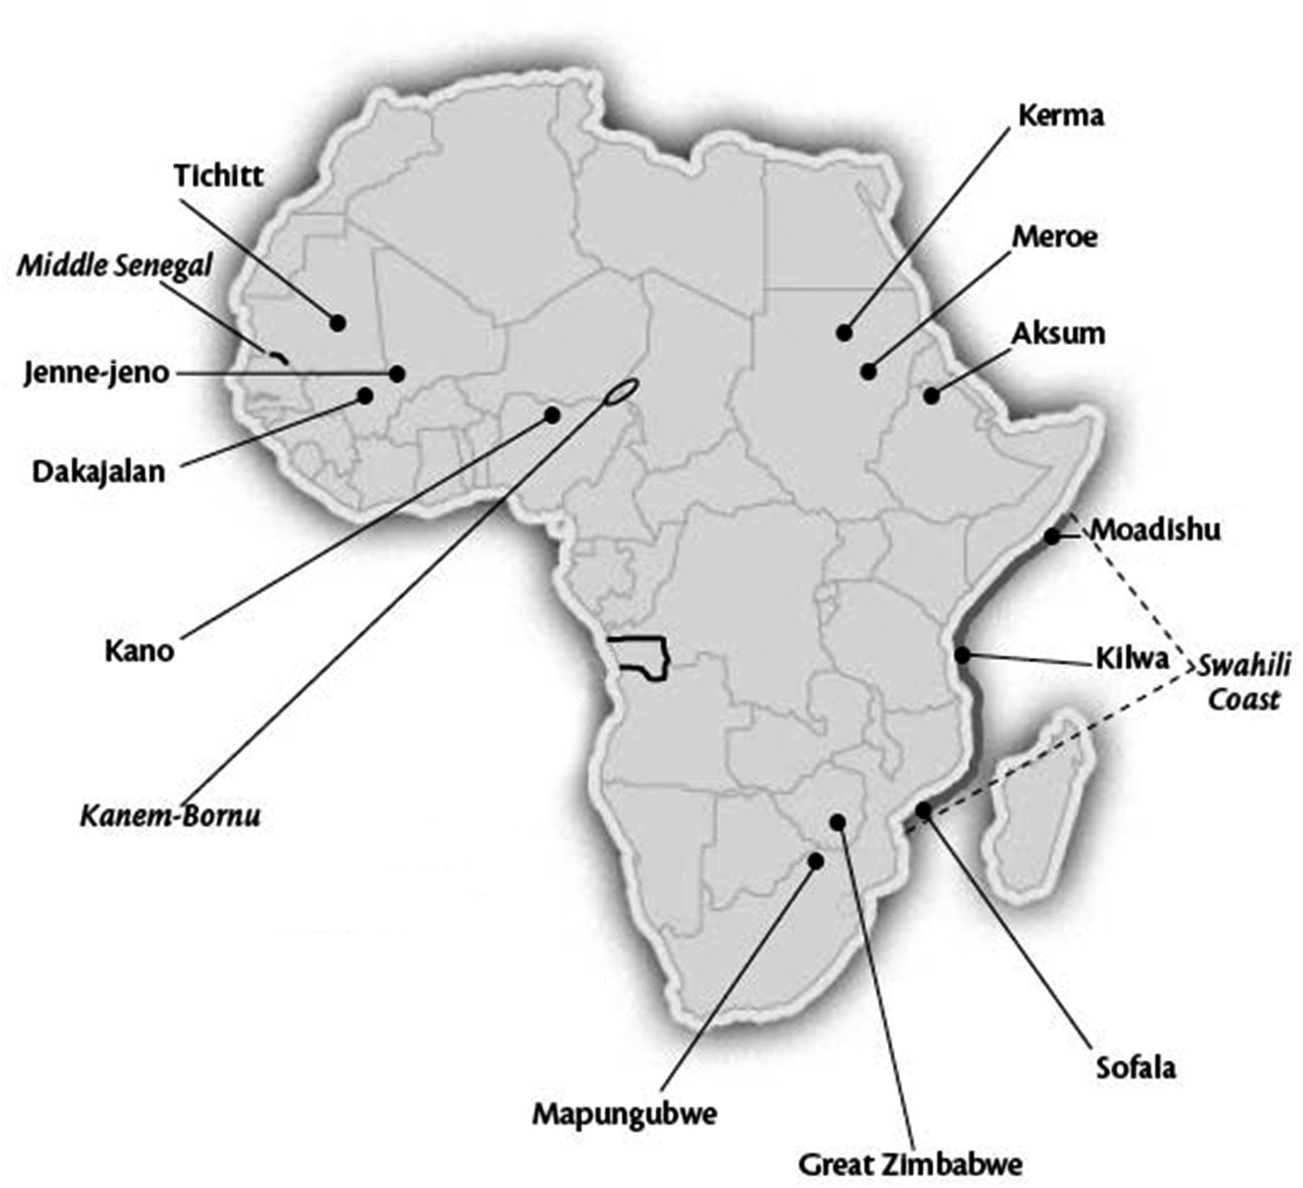 Different cities: Jenne jeno and African urbanism (Chapter 17